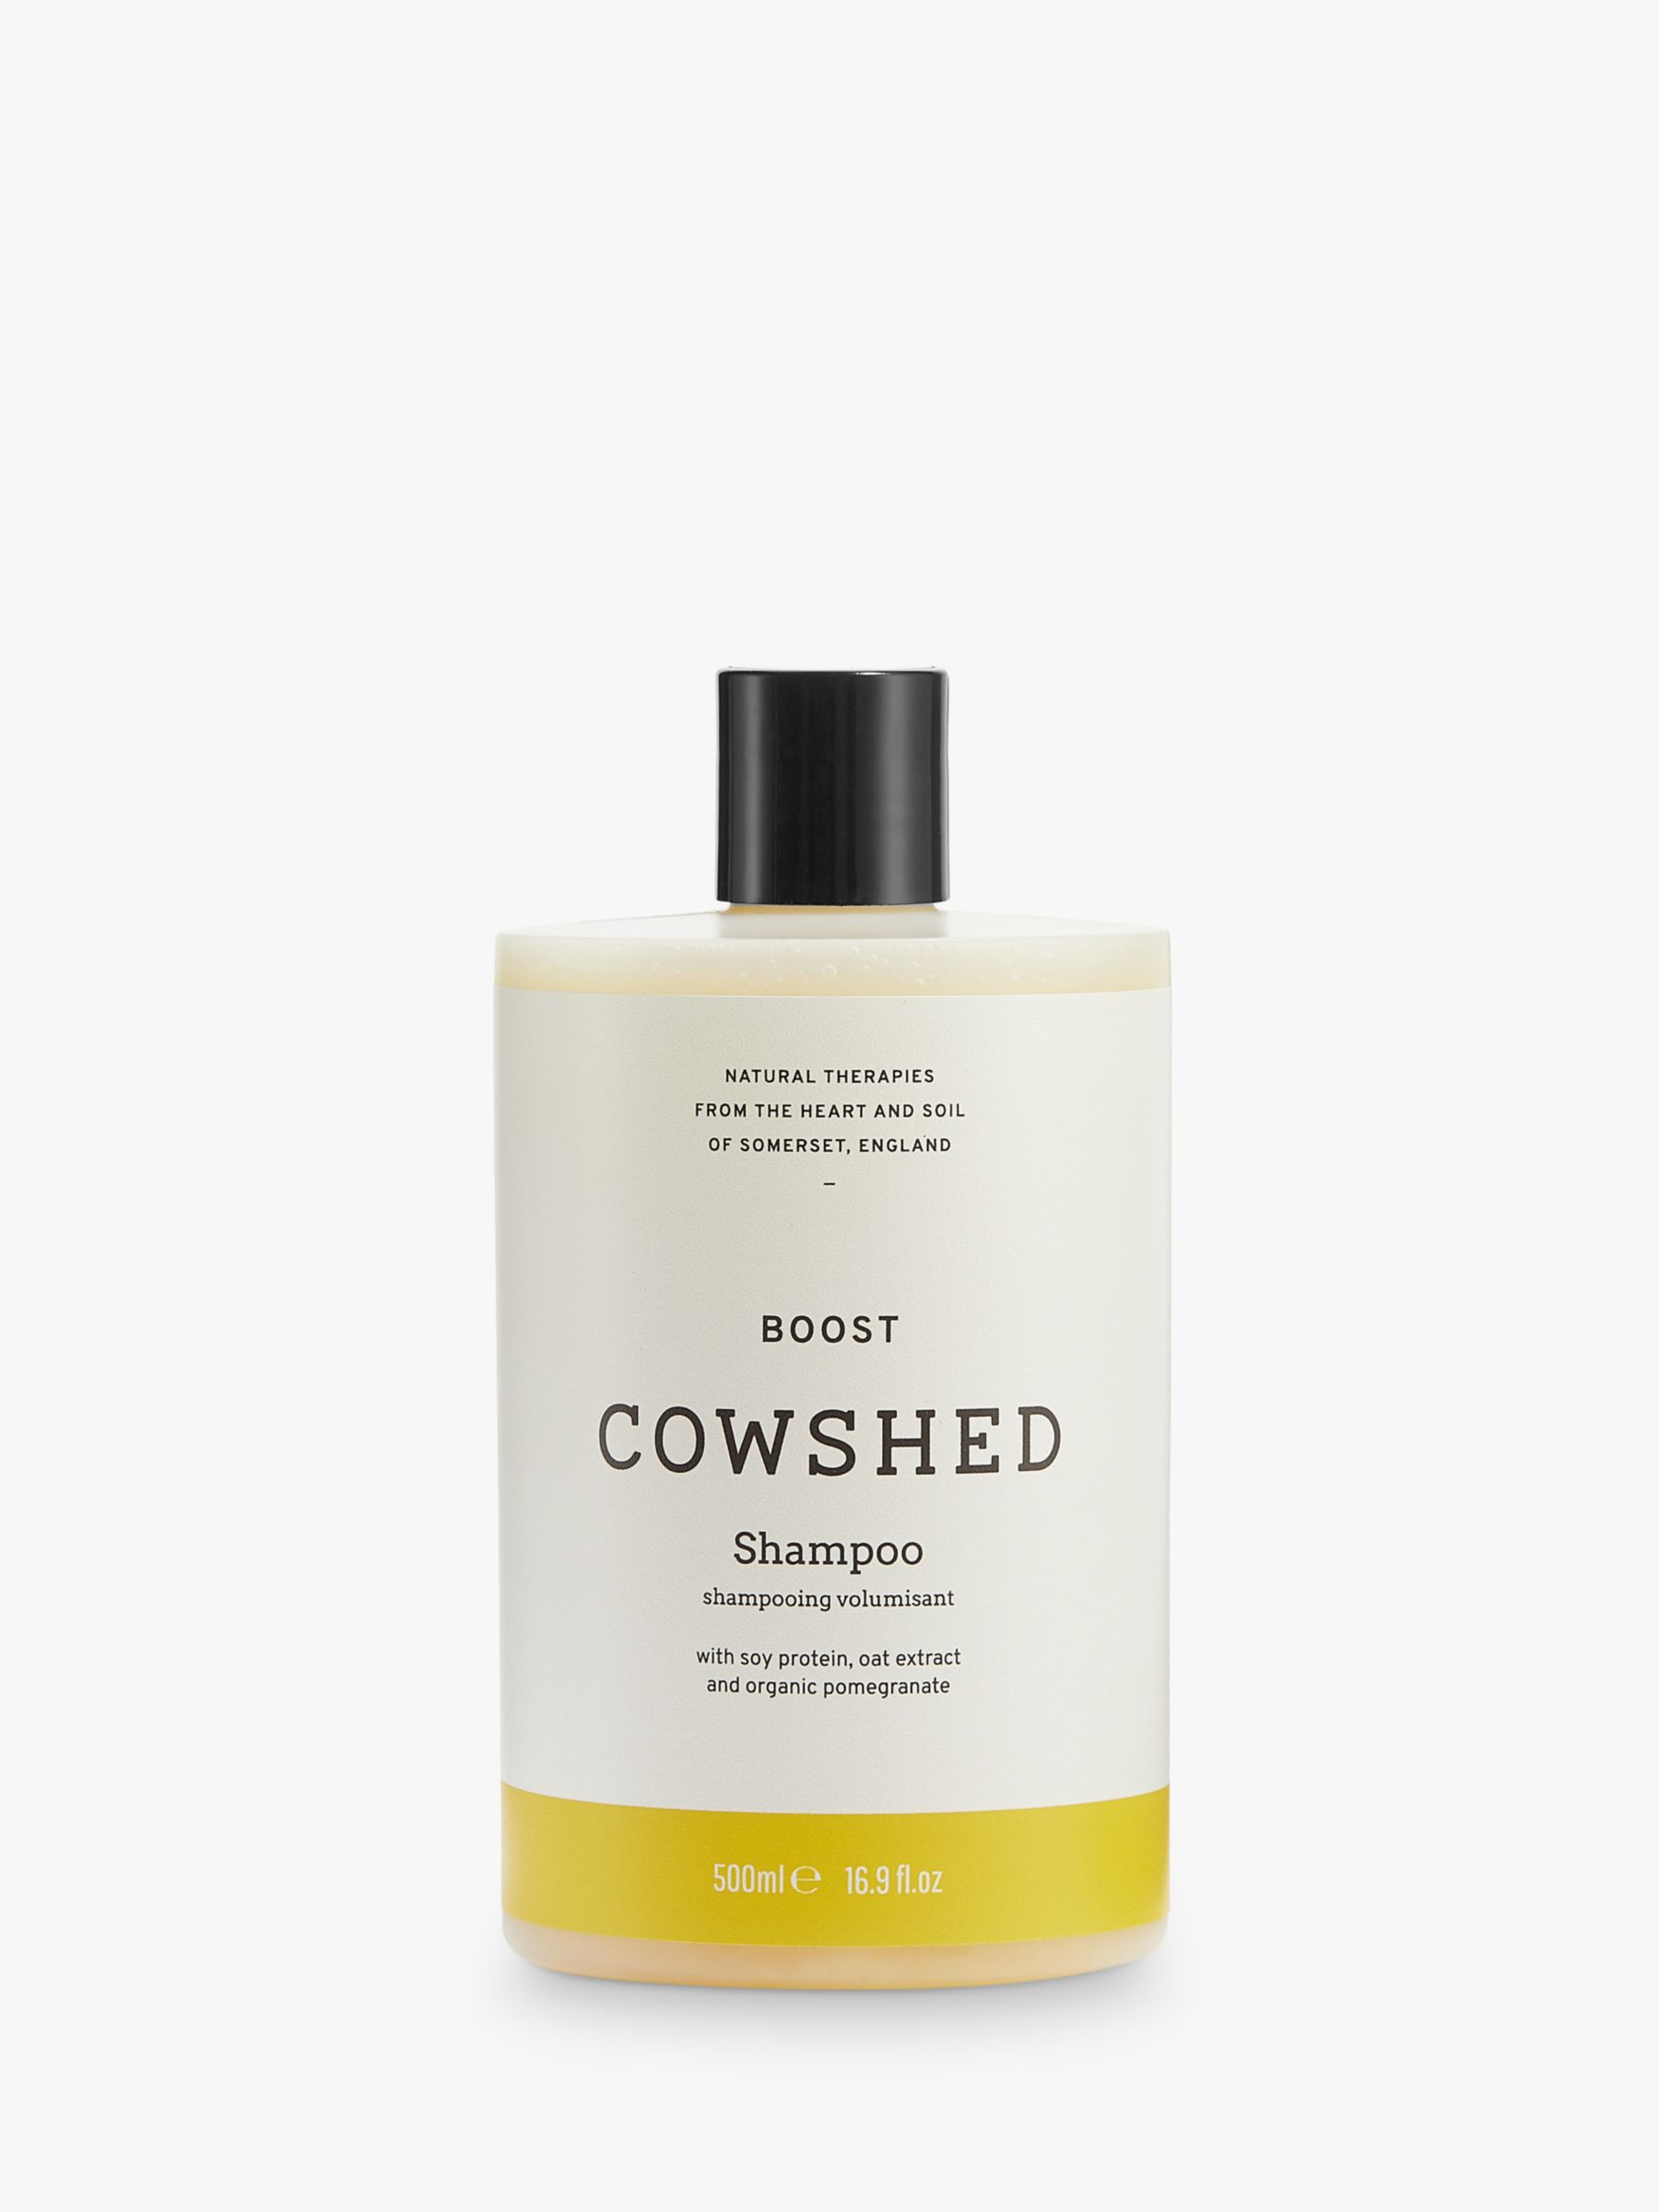 Cowshed Cowshed Boost Shampoo, 500ml